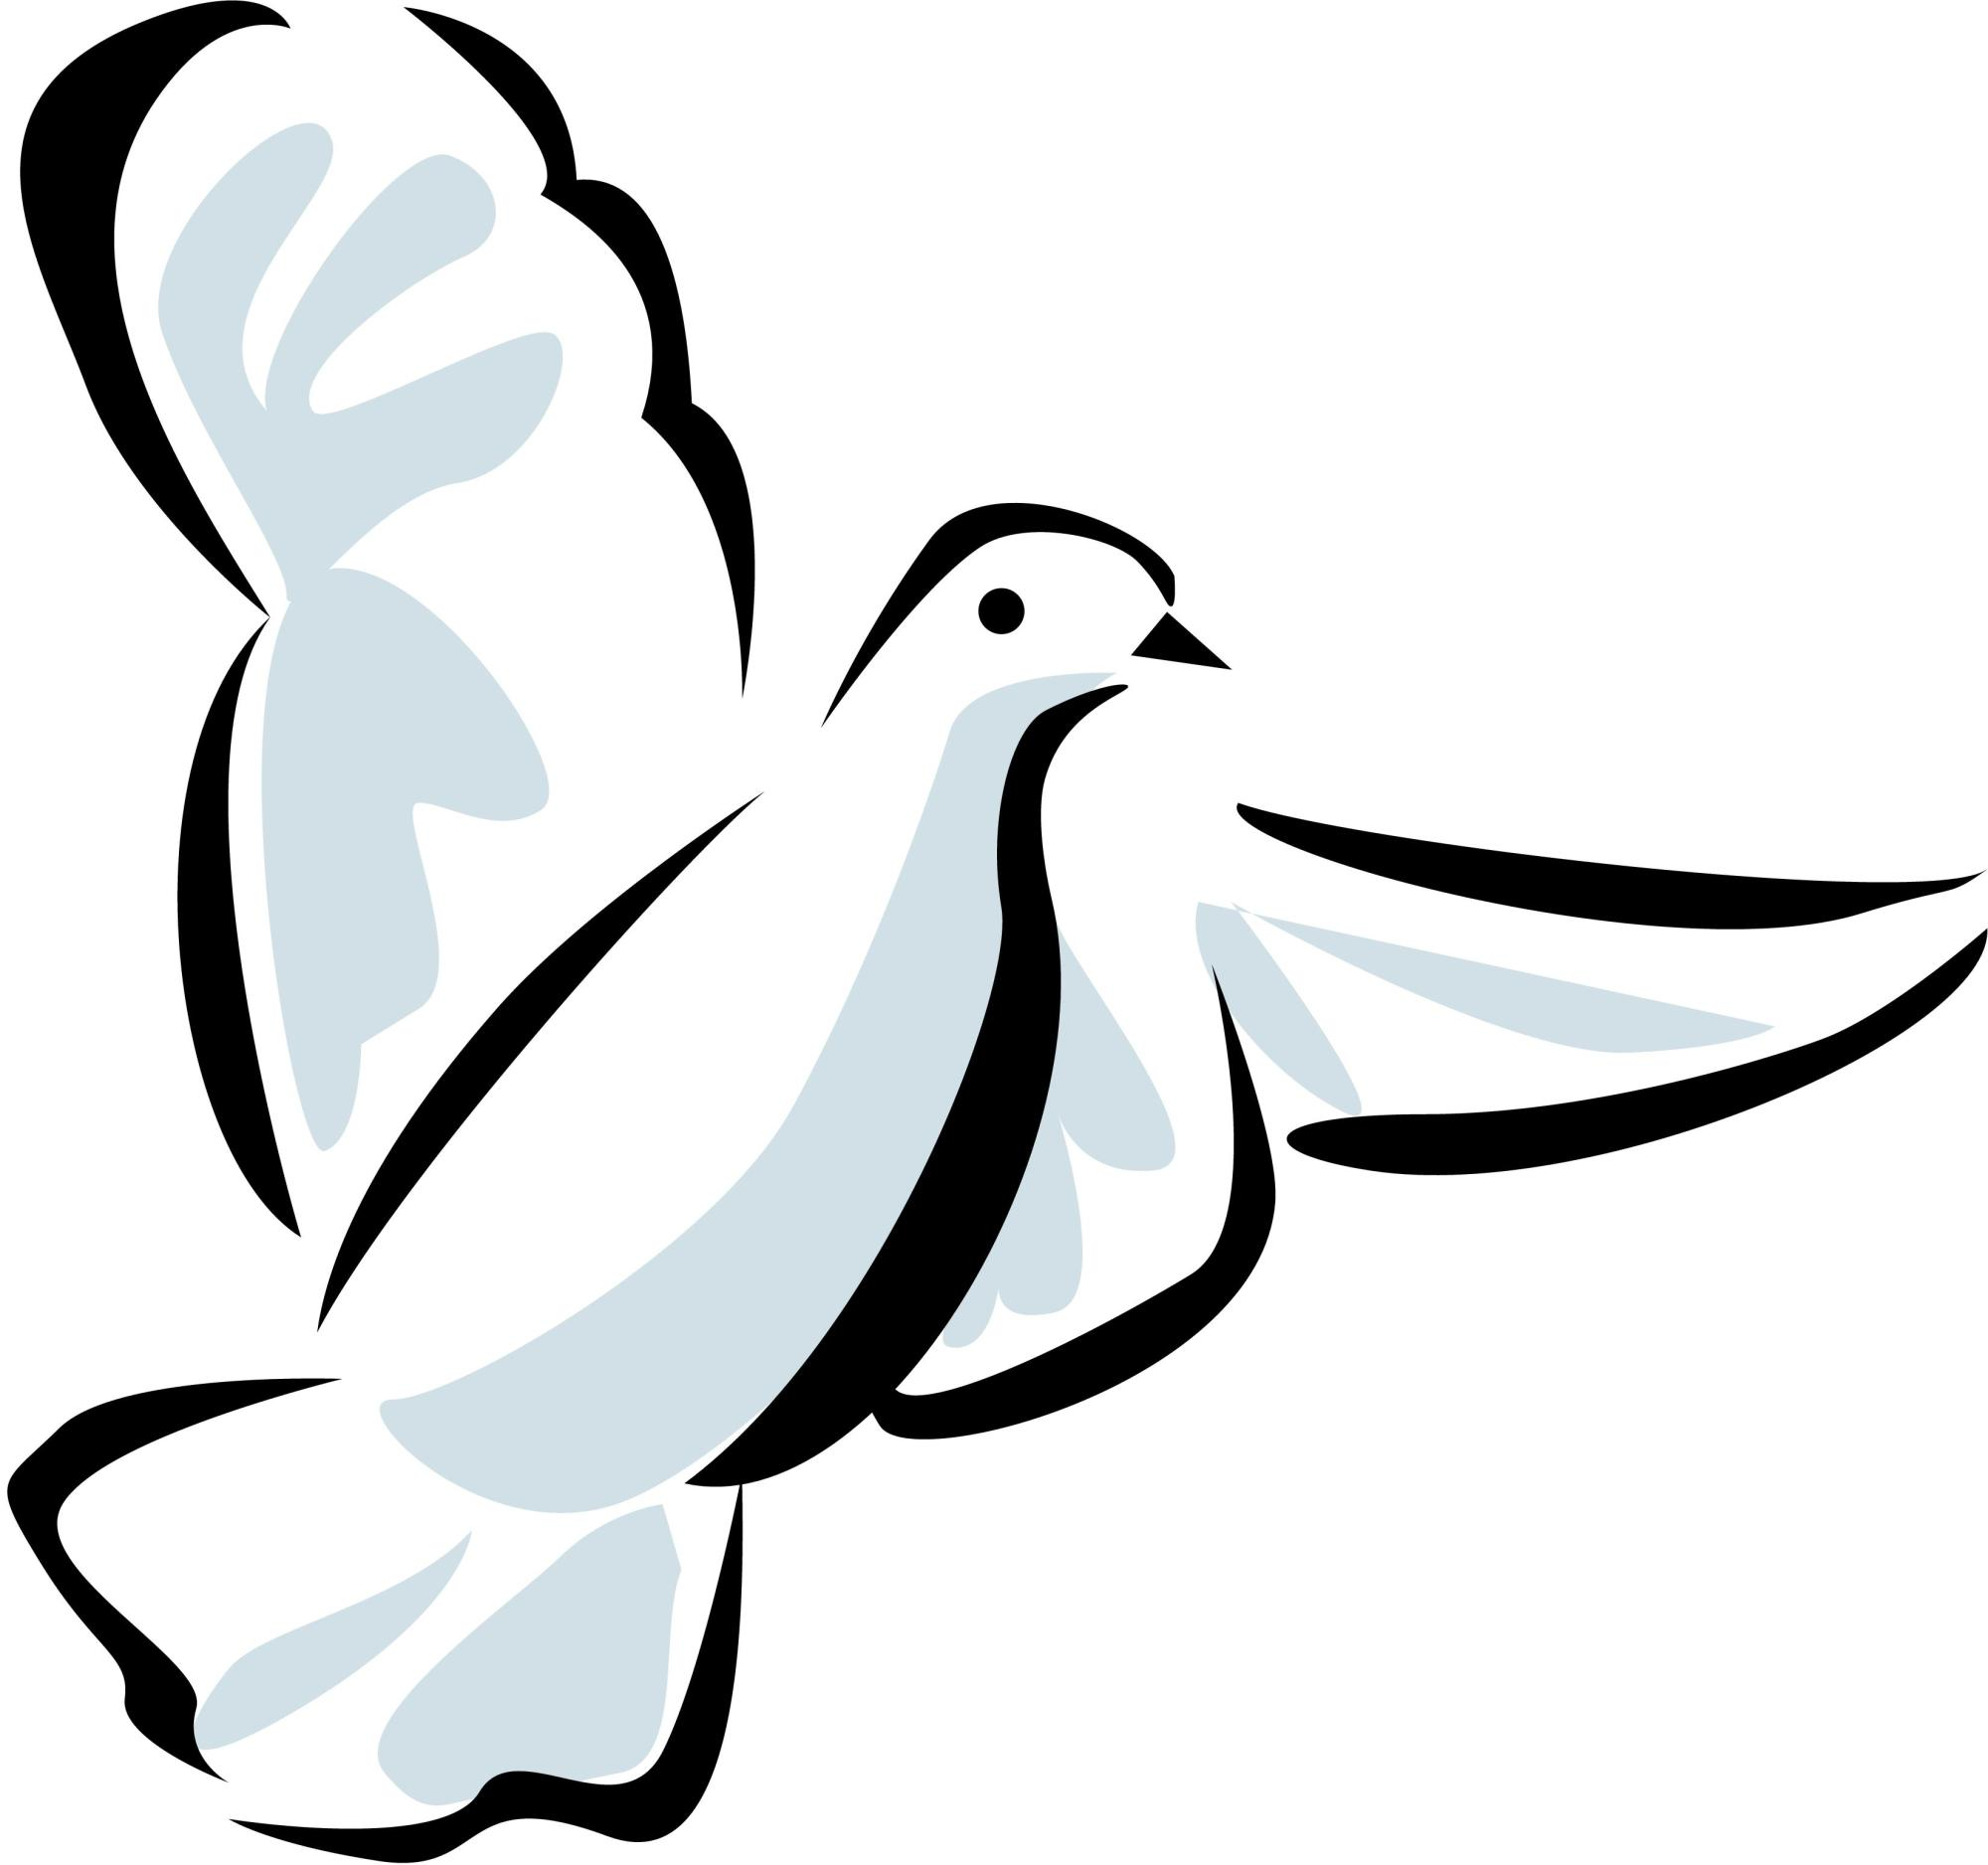 hight resolution of 3300x3096 best free holy spirit clip art pictures free vector art images